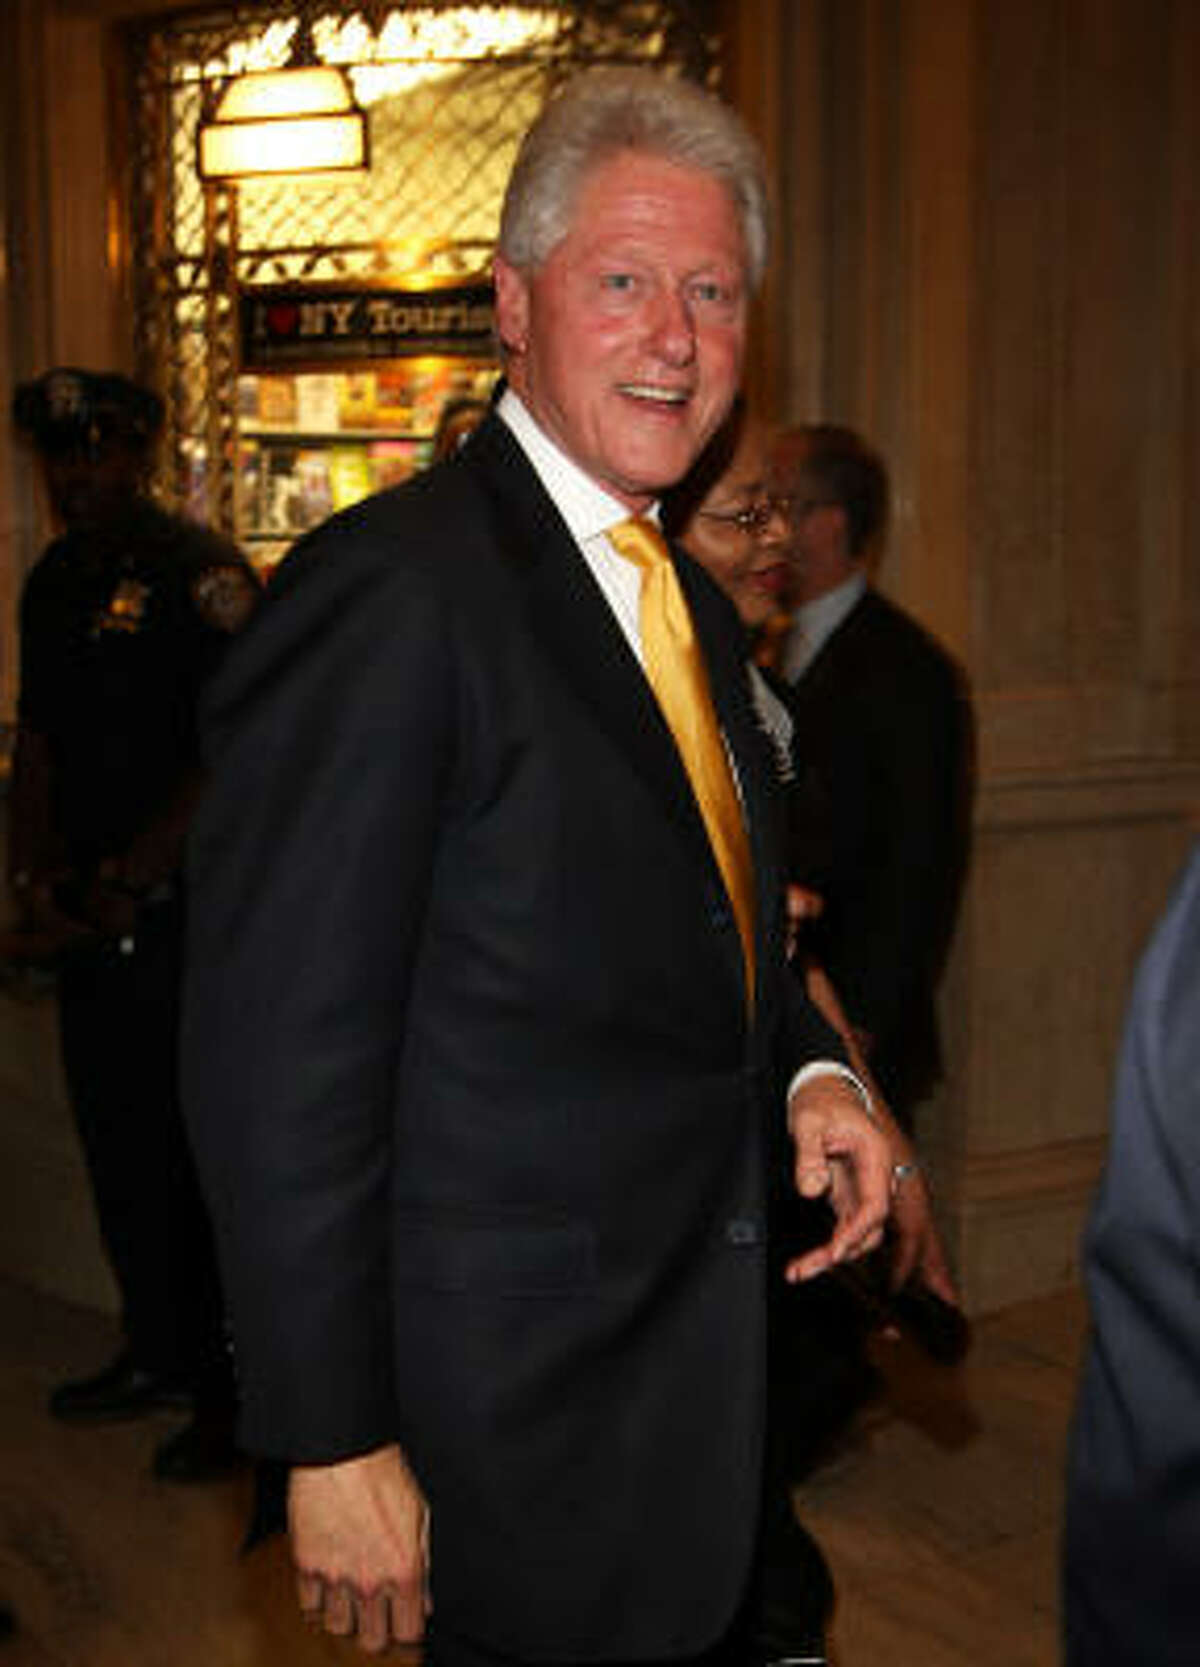 Bill Clinton went from the most hated husband in America to being the apple of democrats' eyes again.